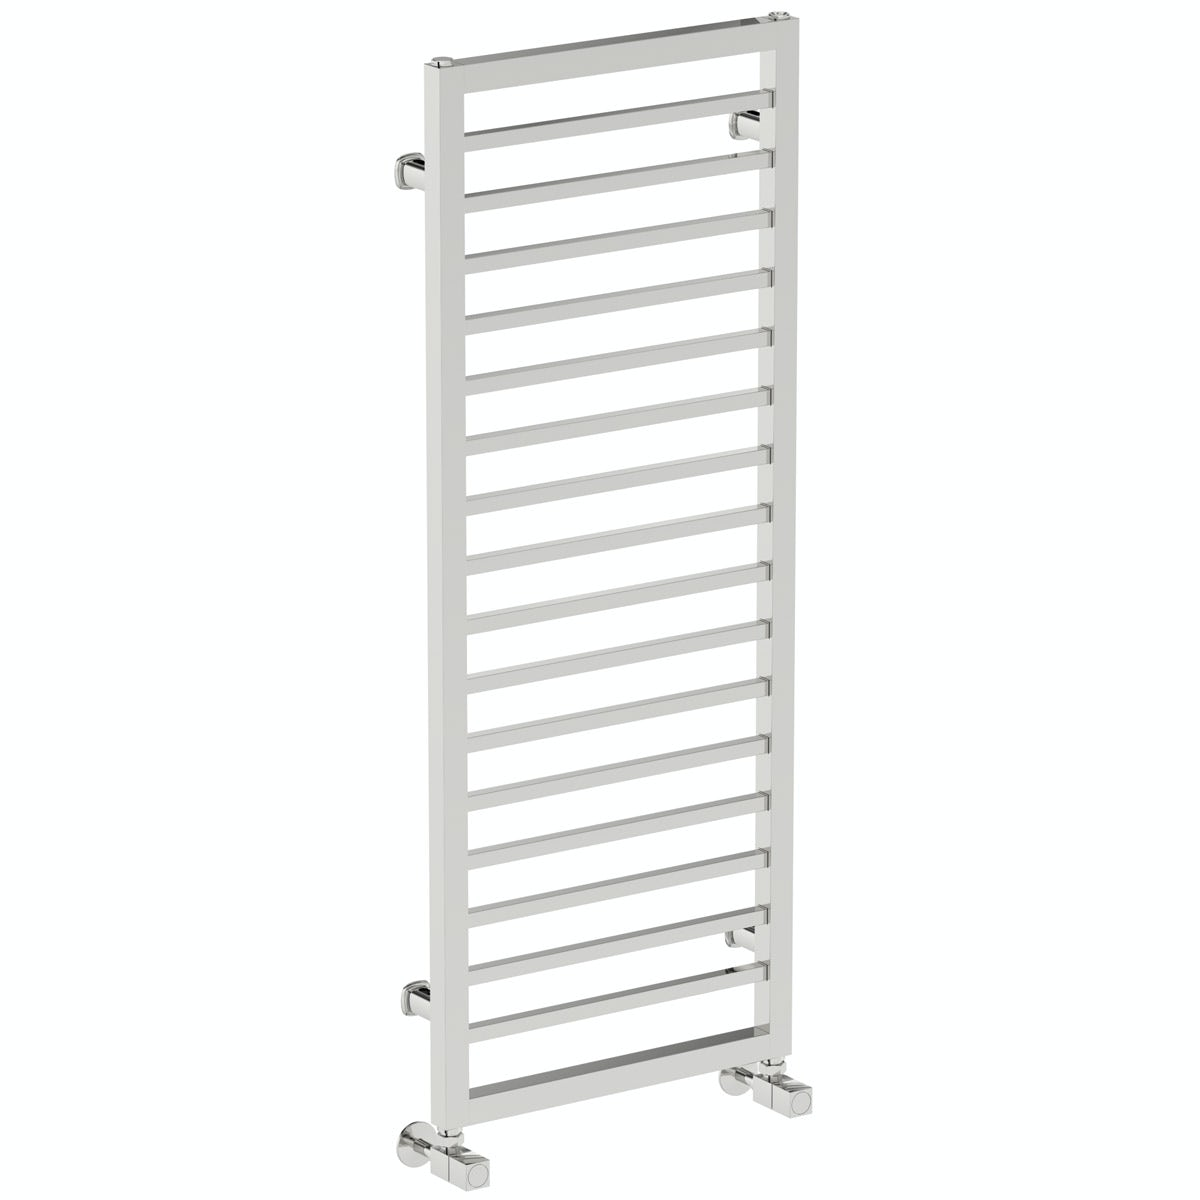 Mode Burton chrome heated towel rail 1150 x 450